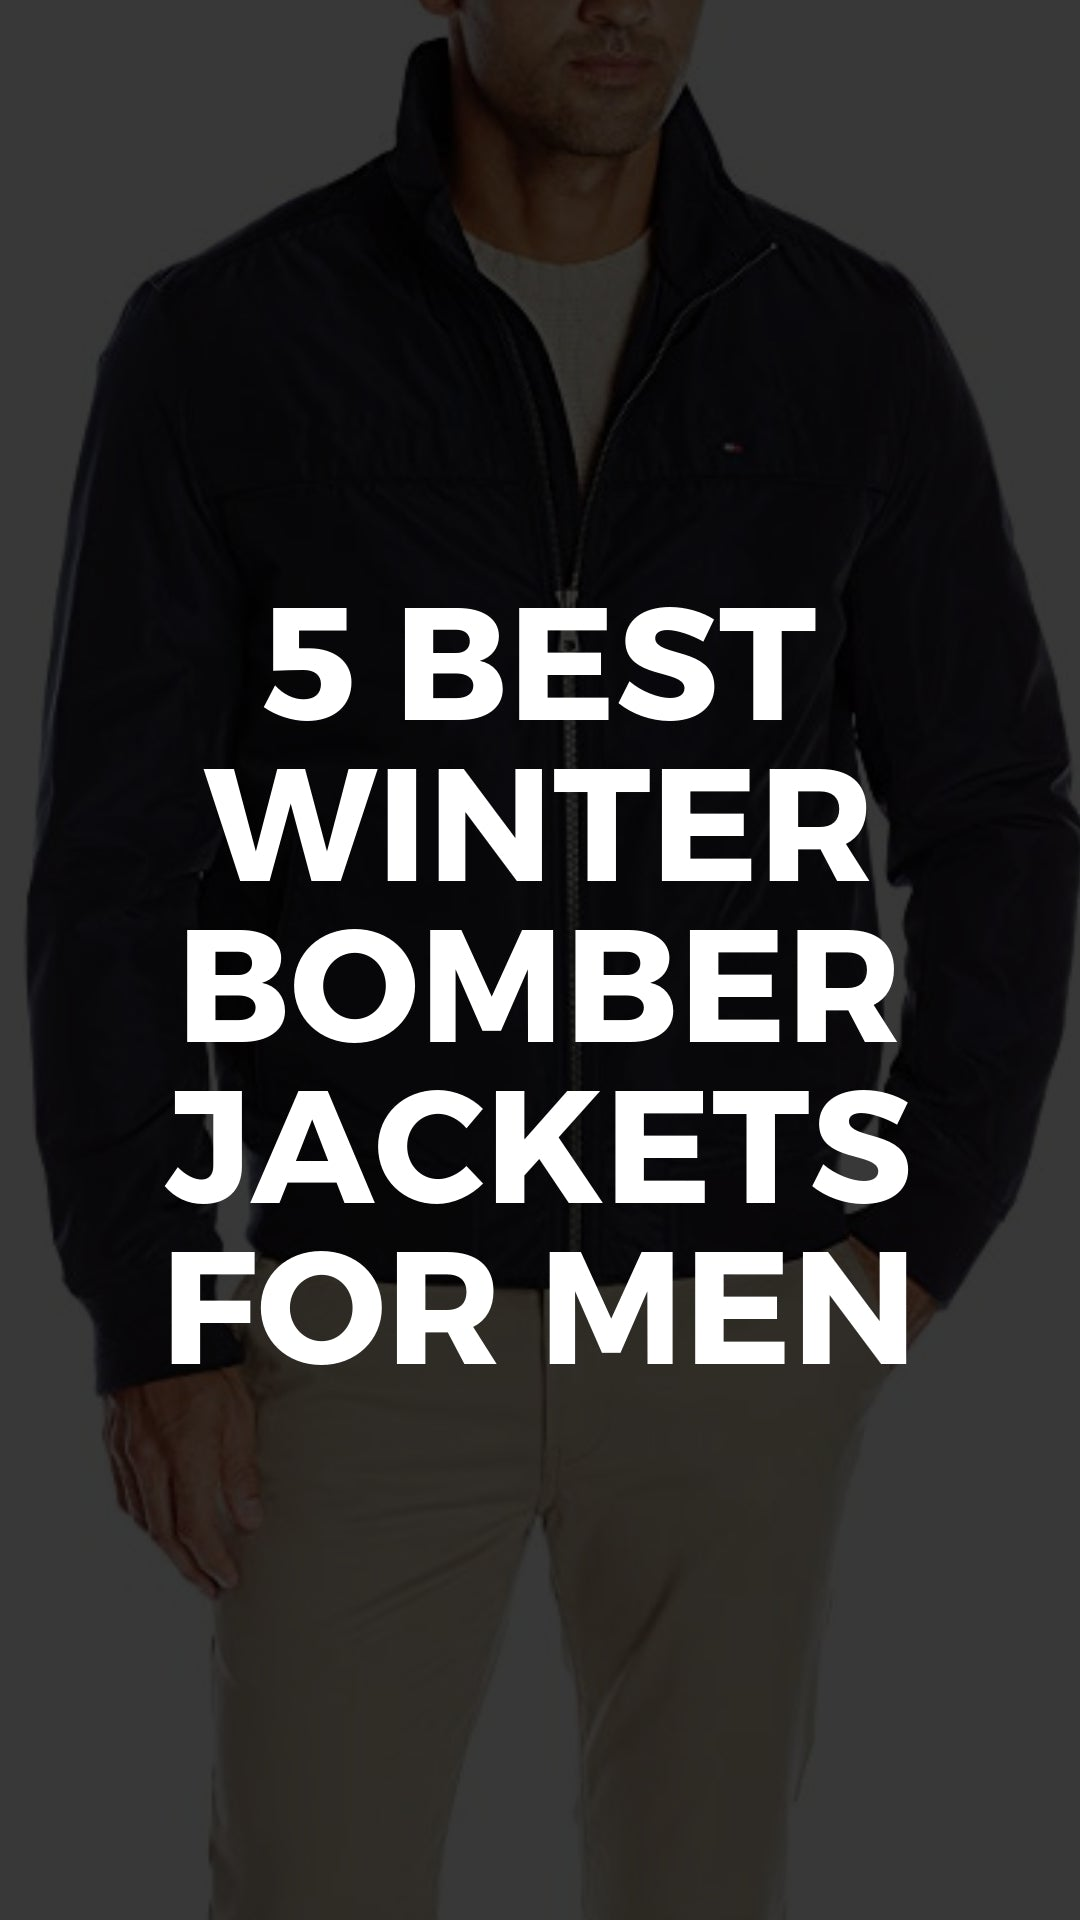 5 Cool Bomber Jackets To Add To Your Winter Wardrobe #bomber #jackets #mens #fashion